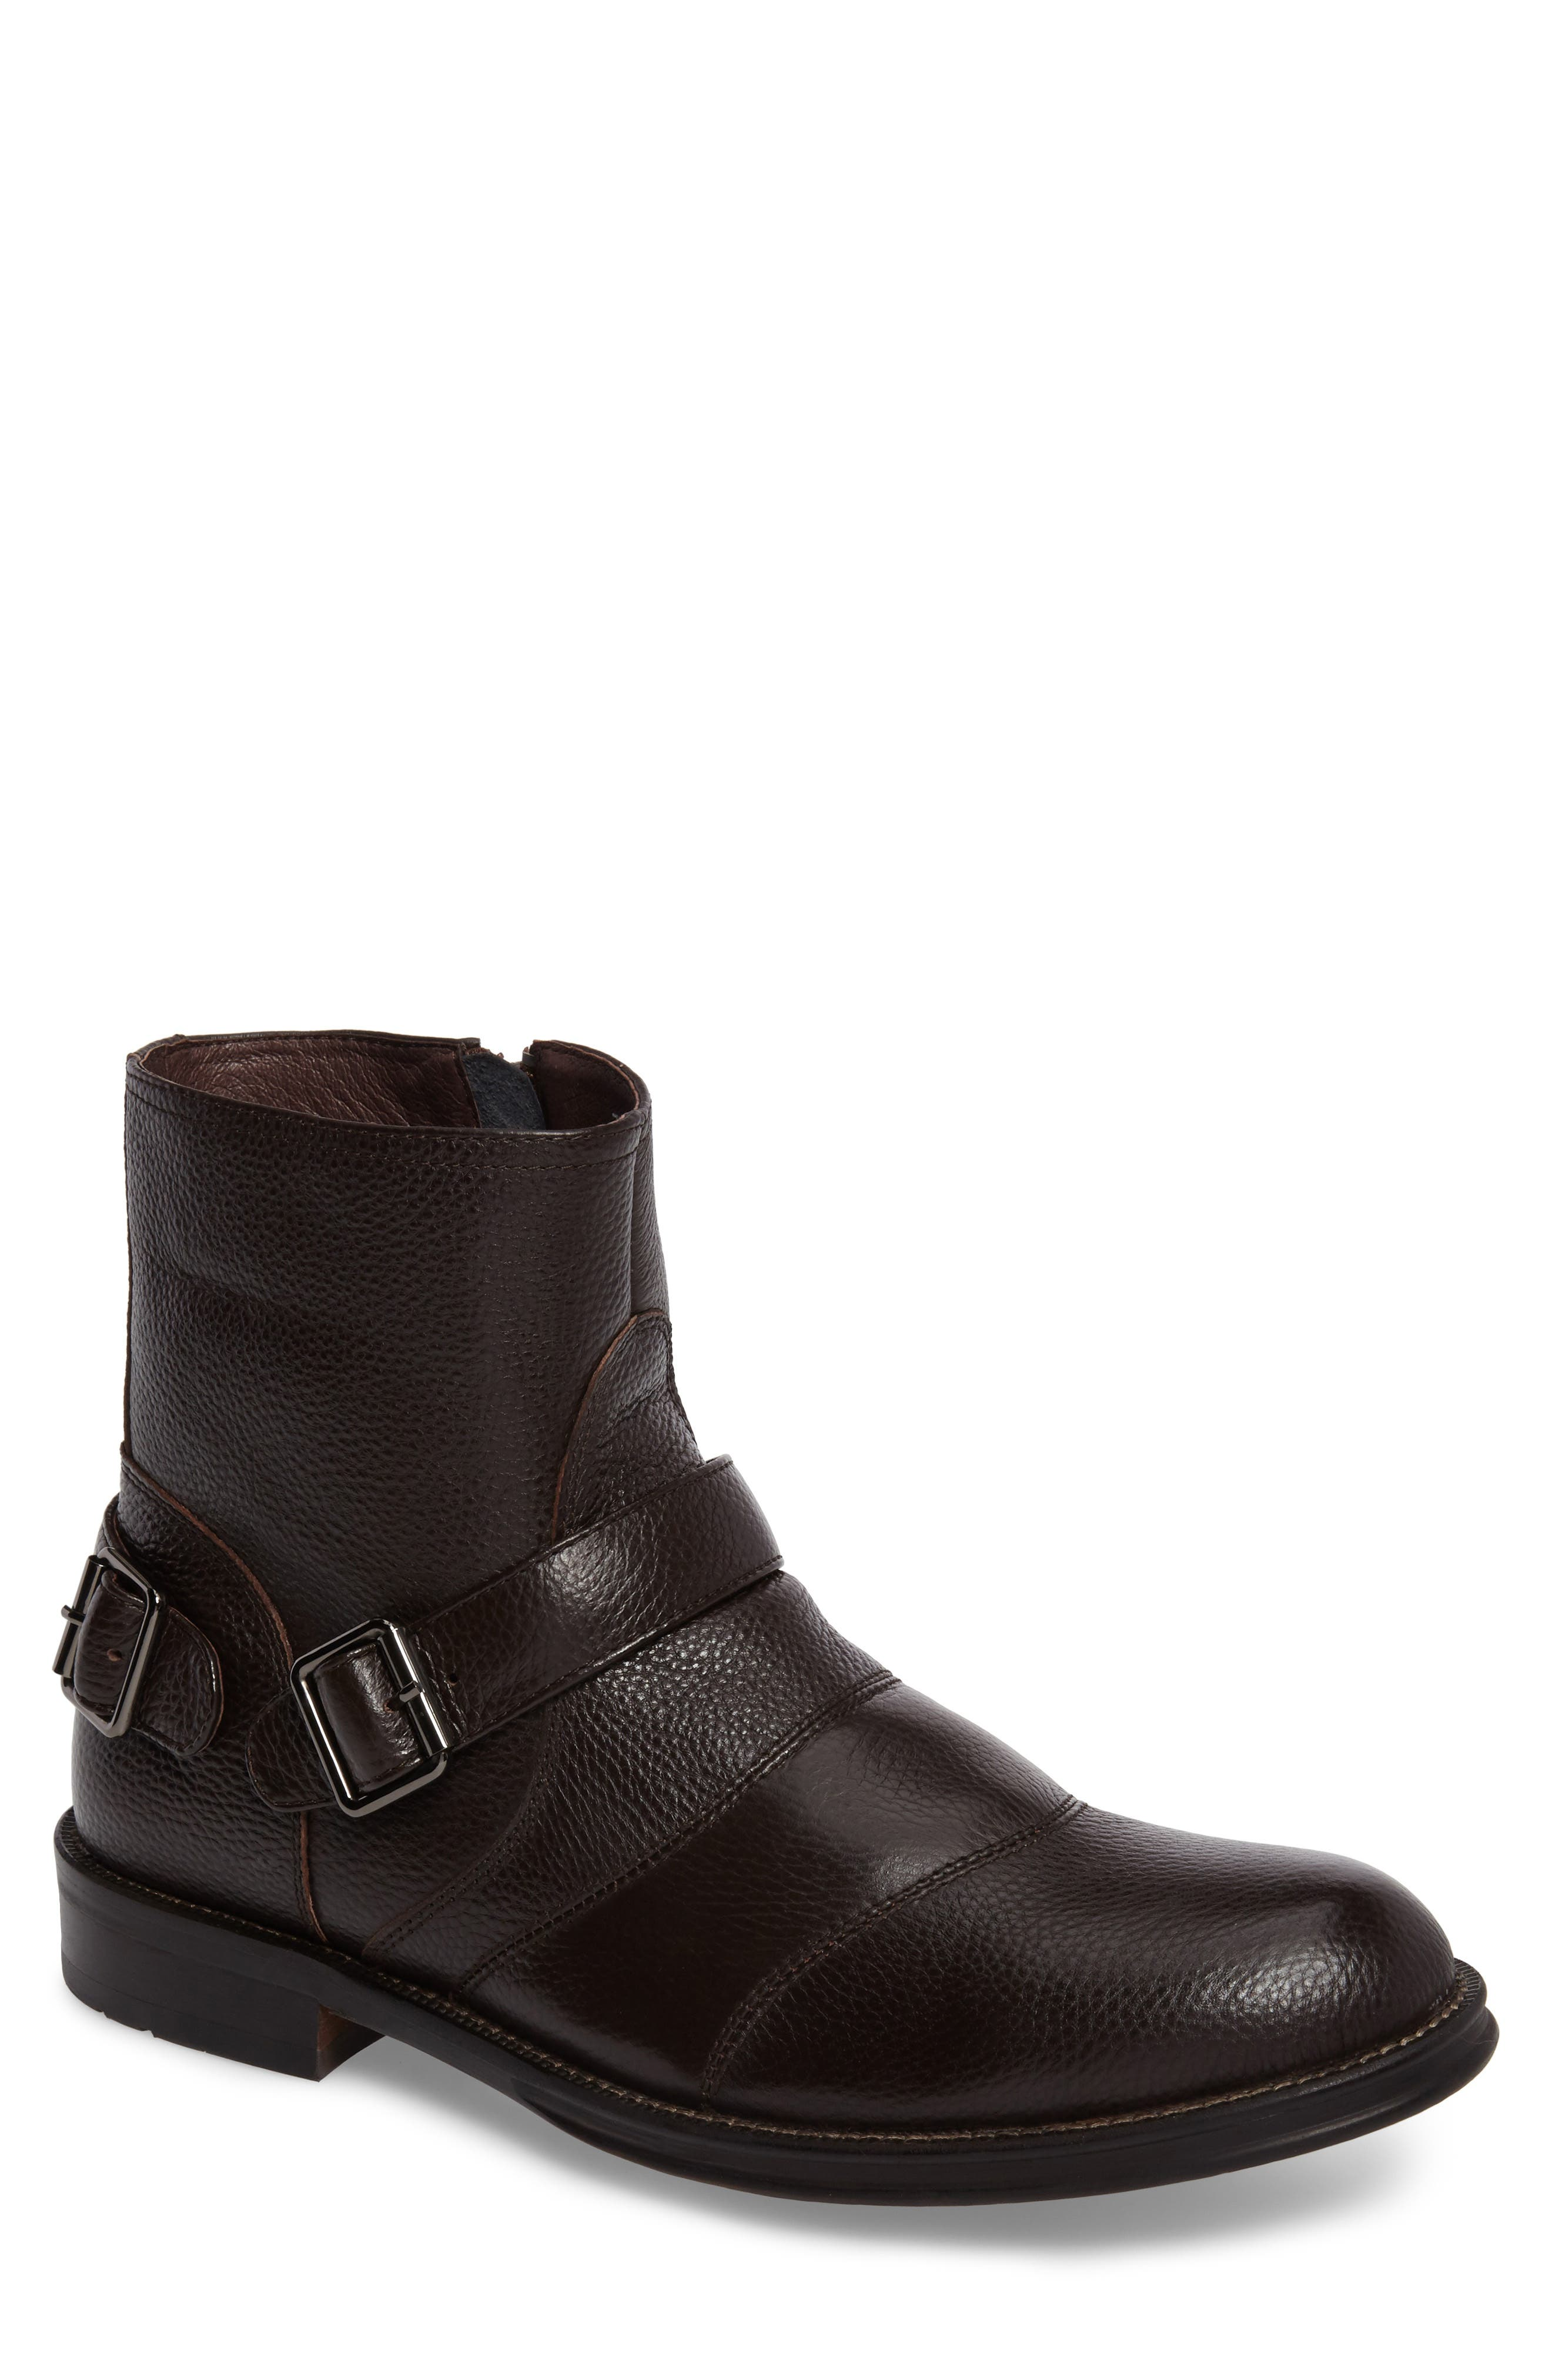 Zanzara Howson Buckle Strap Boot- Brown